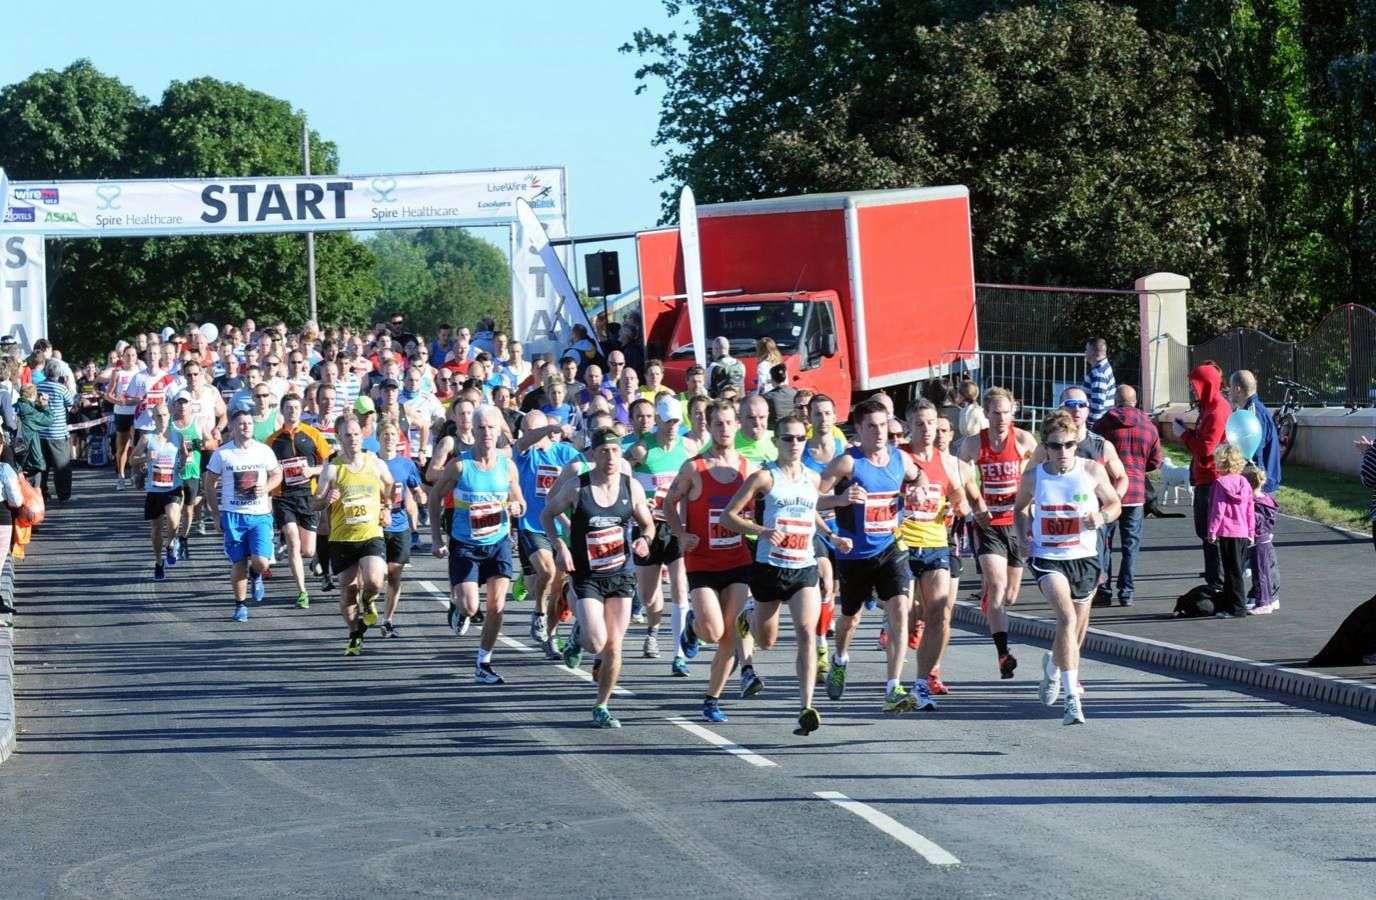 Organisers of this half marathon apologise for cancelling six days before the race